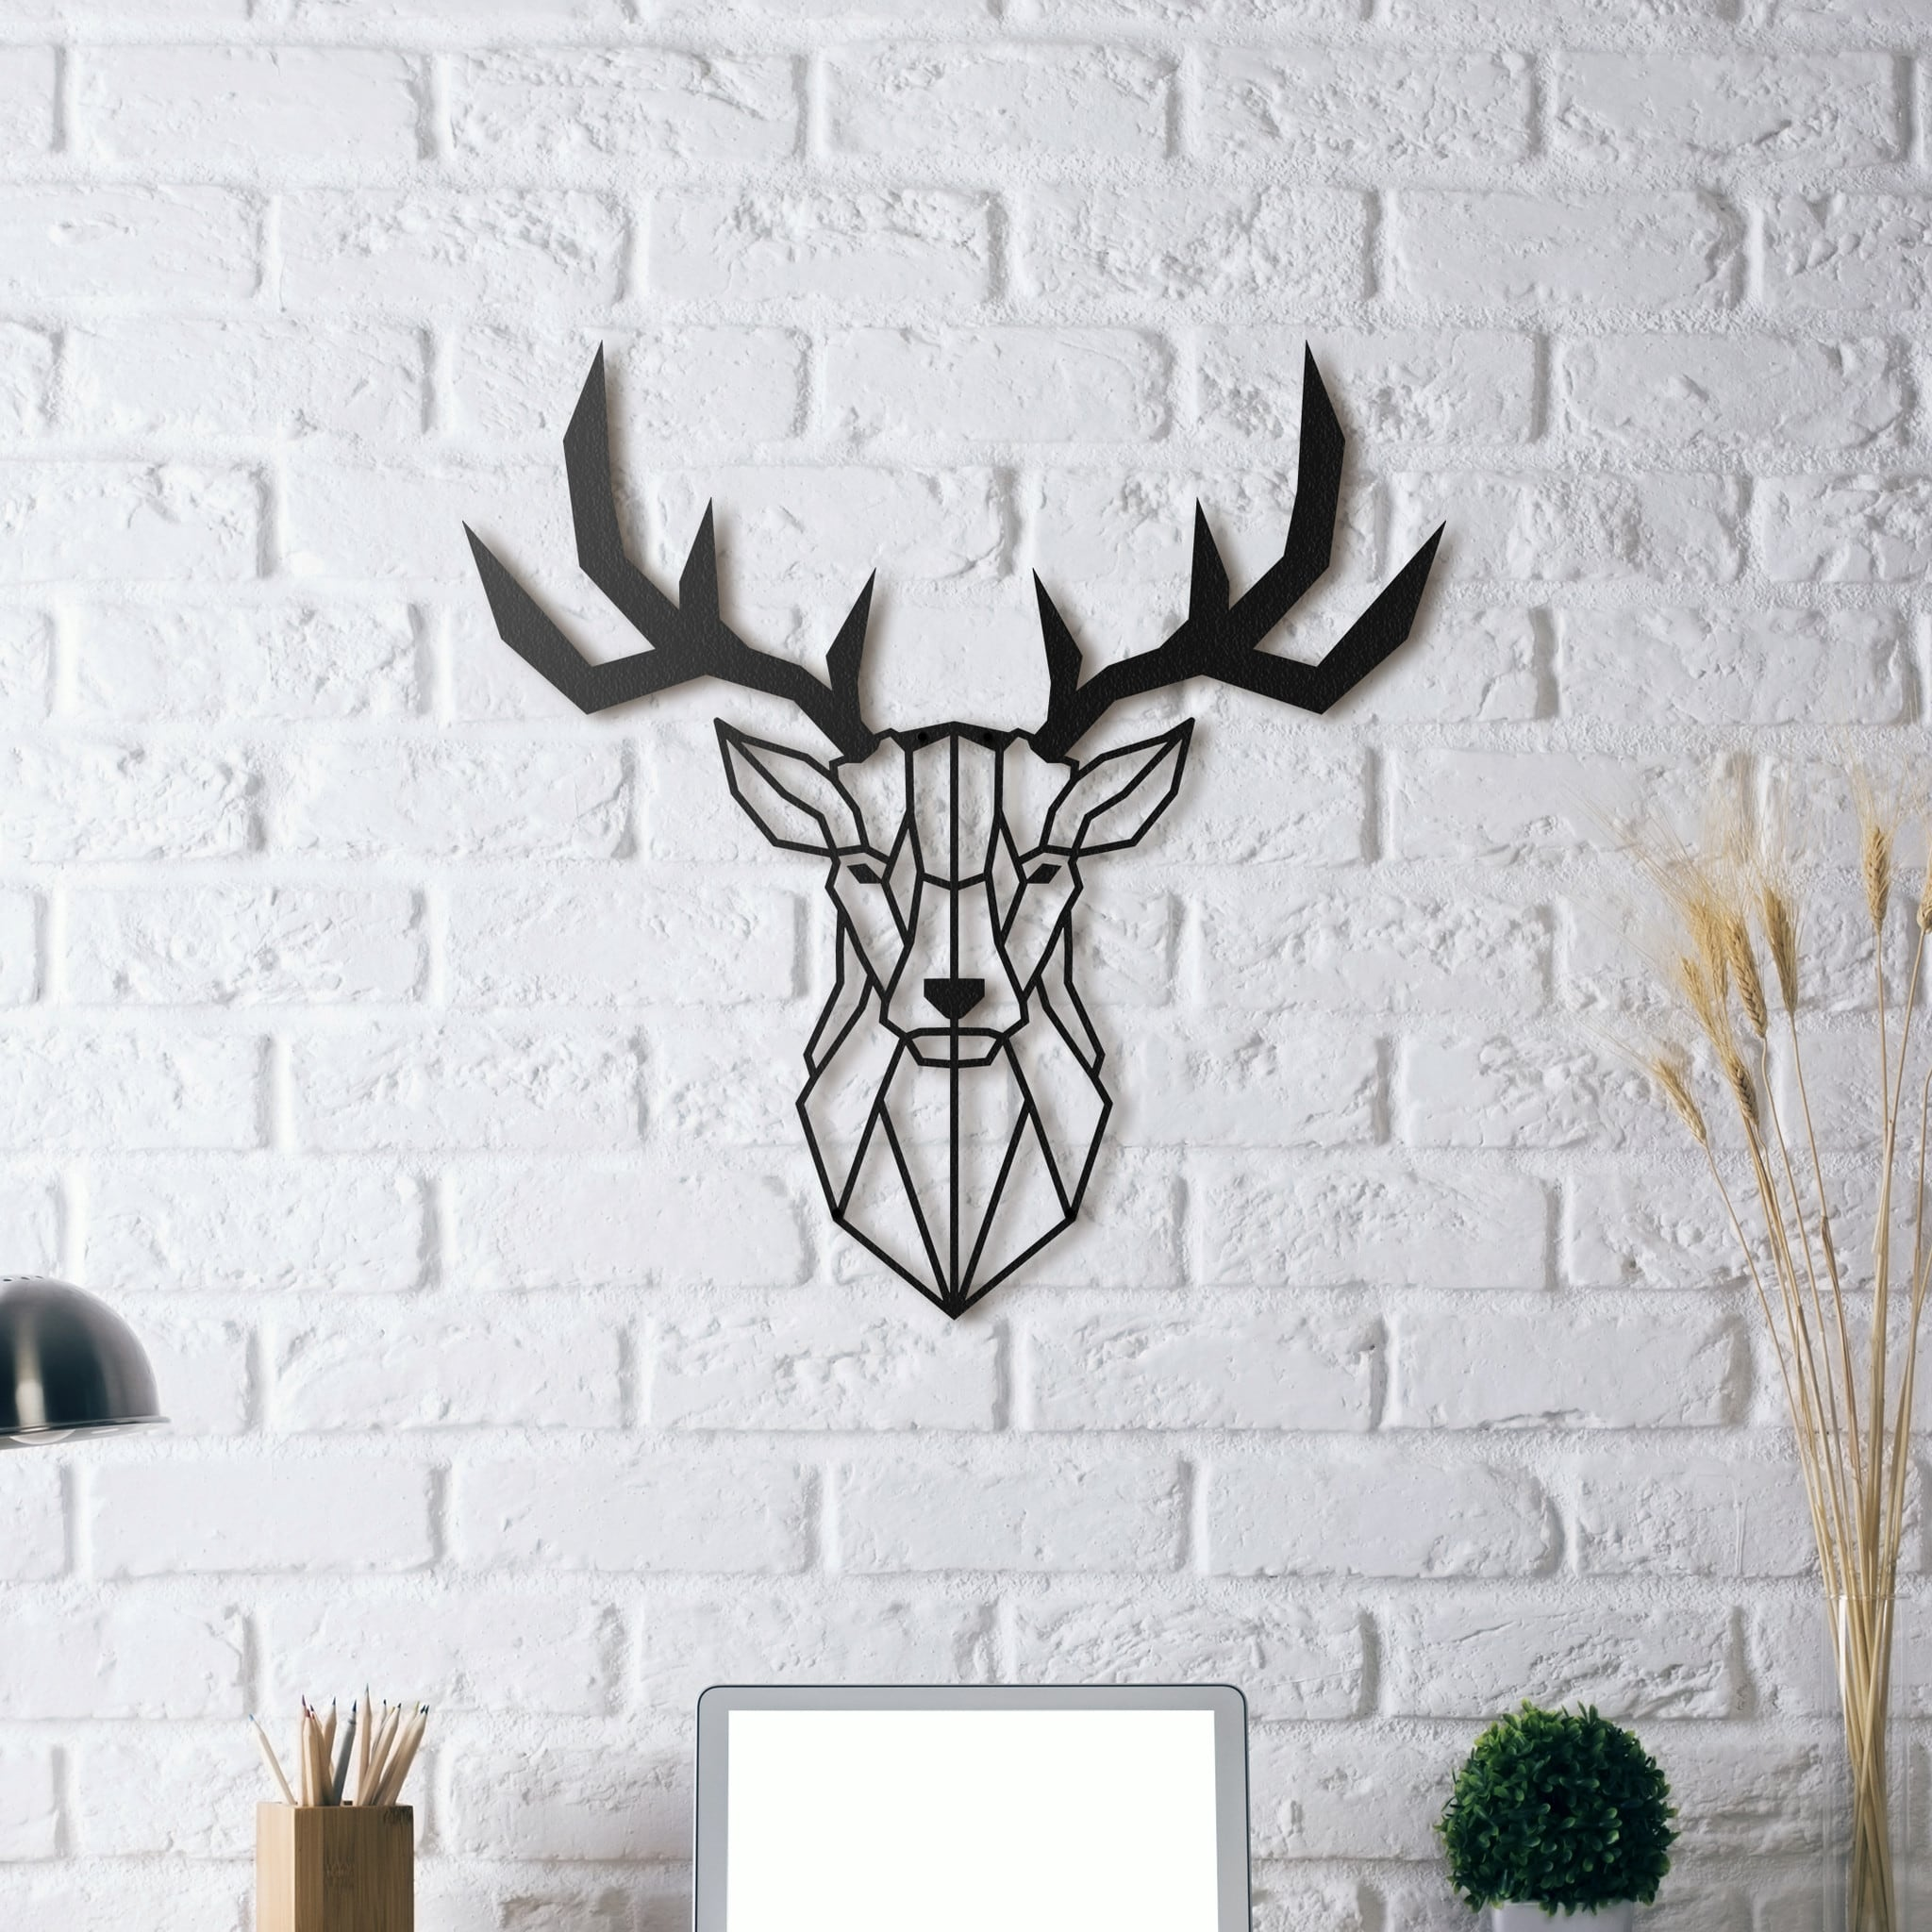 Stag wall metal decoration to bring a contemporary touch in your interior